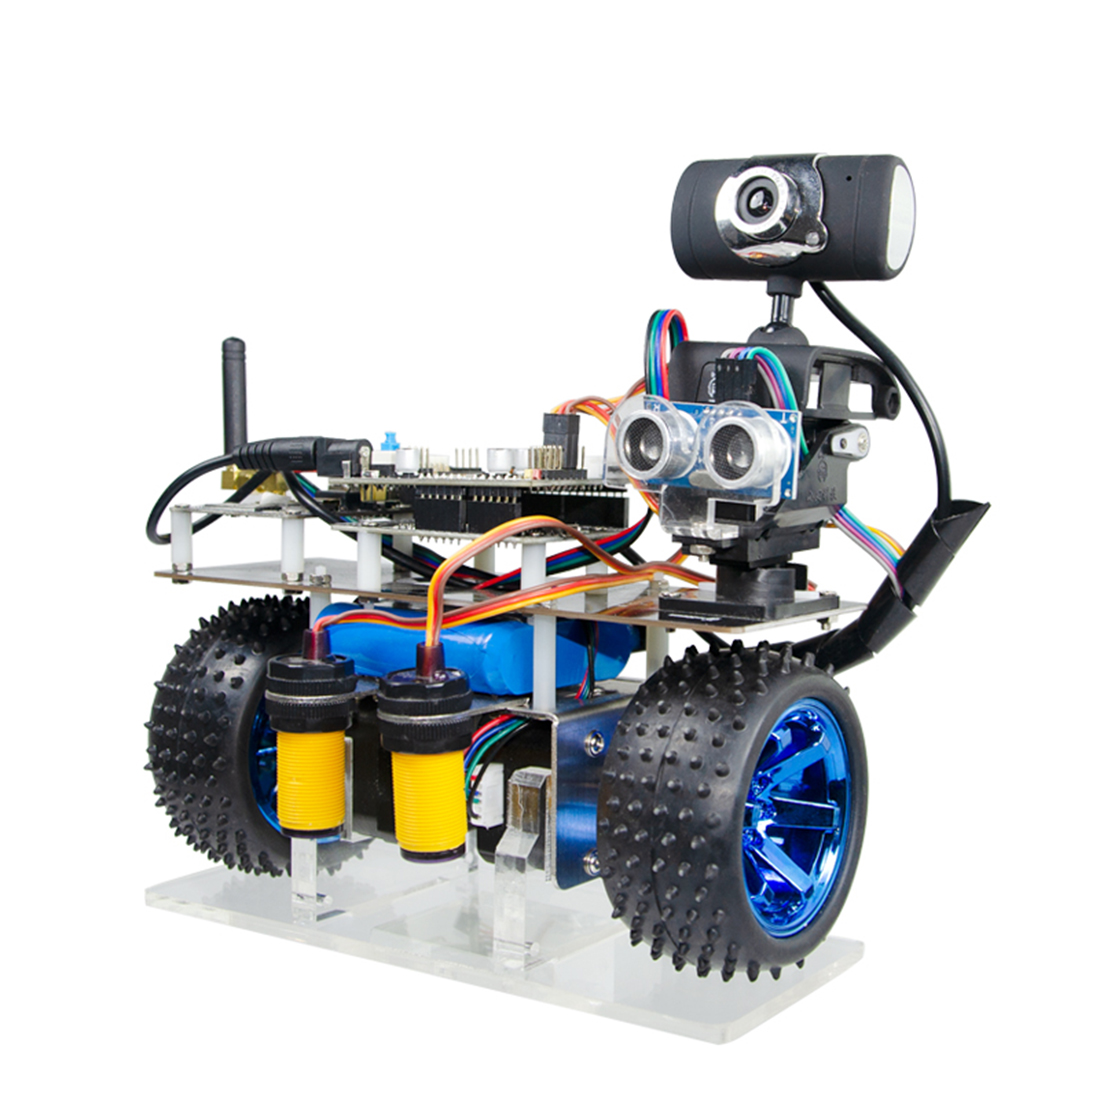 Programmable Intelligent Balance WiFi Video Robot Car Support IOS/Android APP PC RC For STM32- Patrol Obstacle Avoidance Version